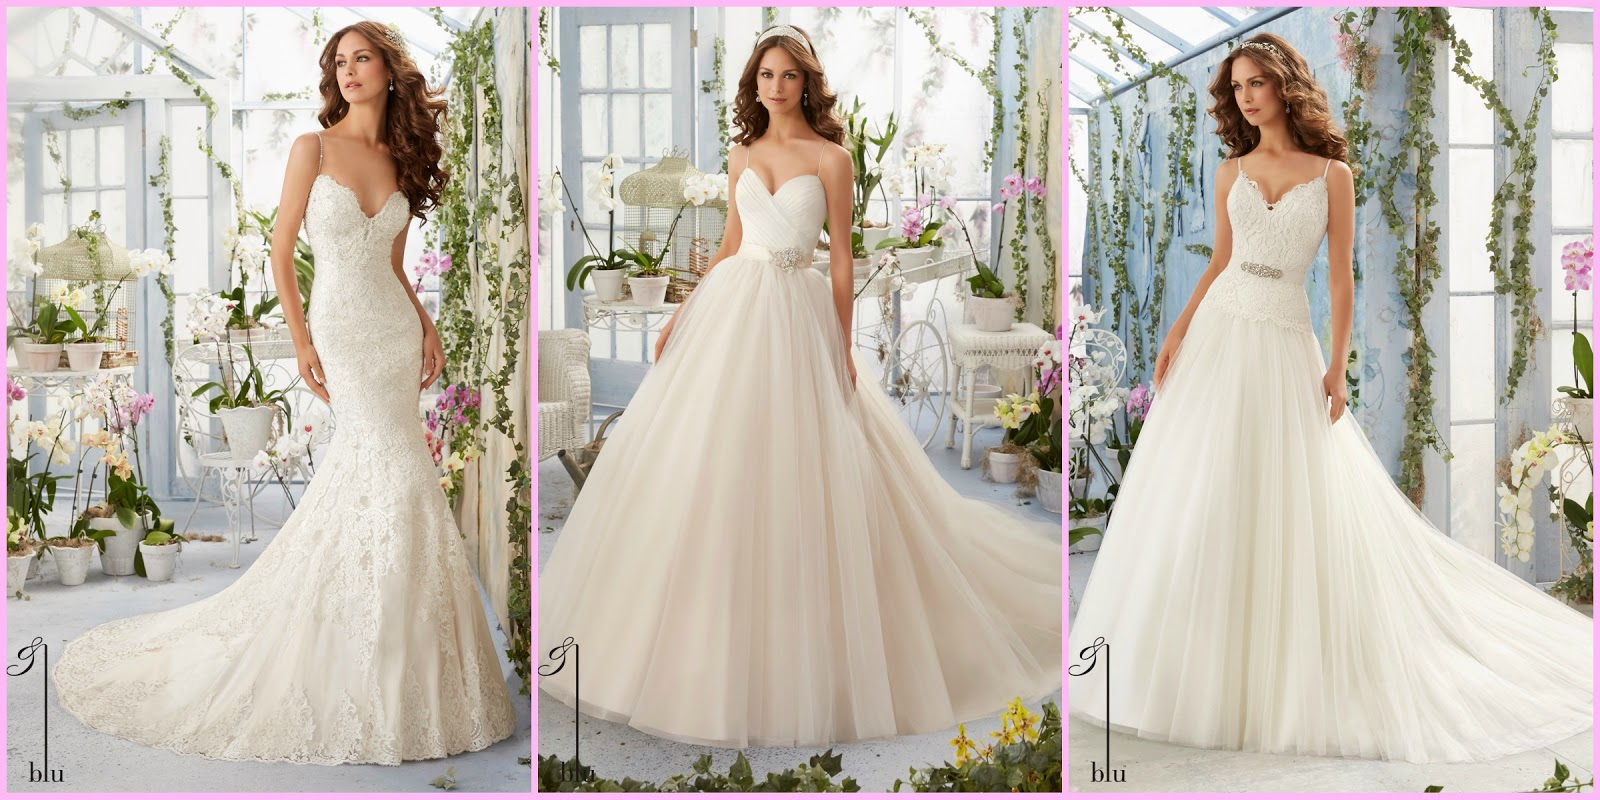 Places to rent wedding dresses in miami cheap wedding for Cost to rent wedding dress in jamaica